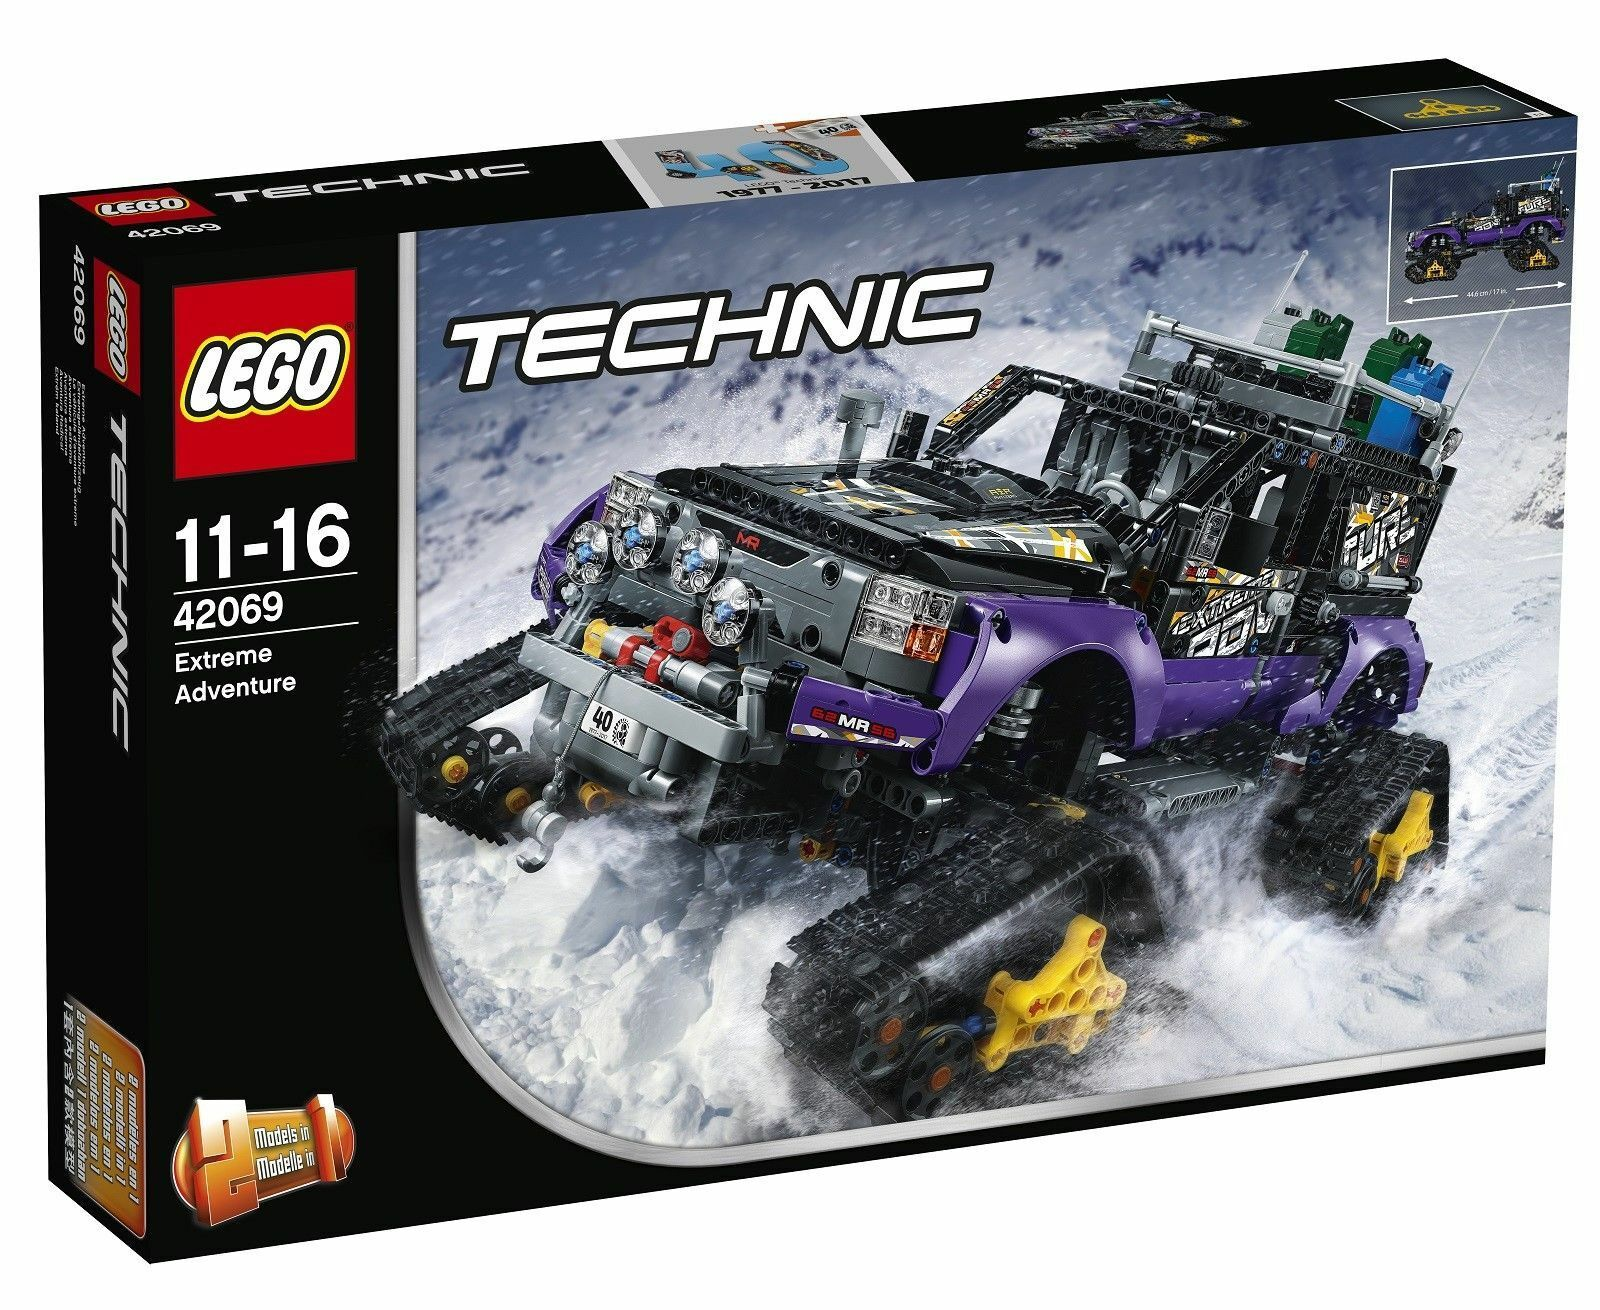 LEGO Technic 42069 Extreme Adventure NEW SEALED FREE UK EXPRESS Delivery